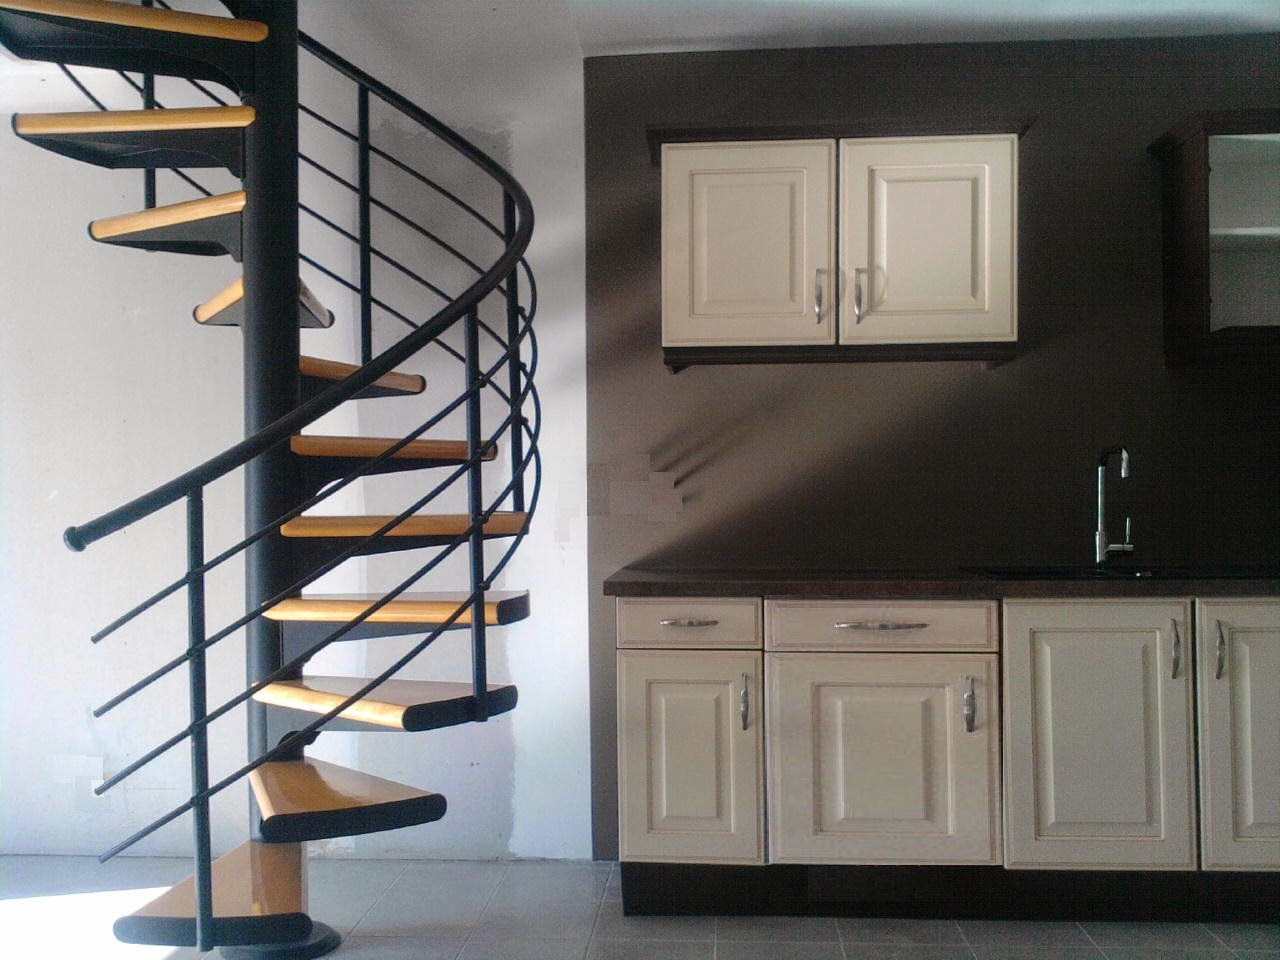 Staircase Designs For Small House Space Saving Stairs Designs For Small Homes Stairs Designs